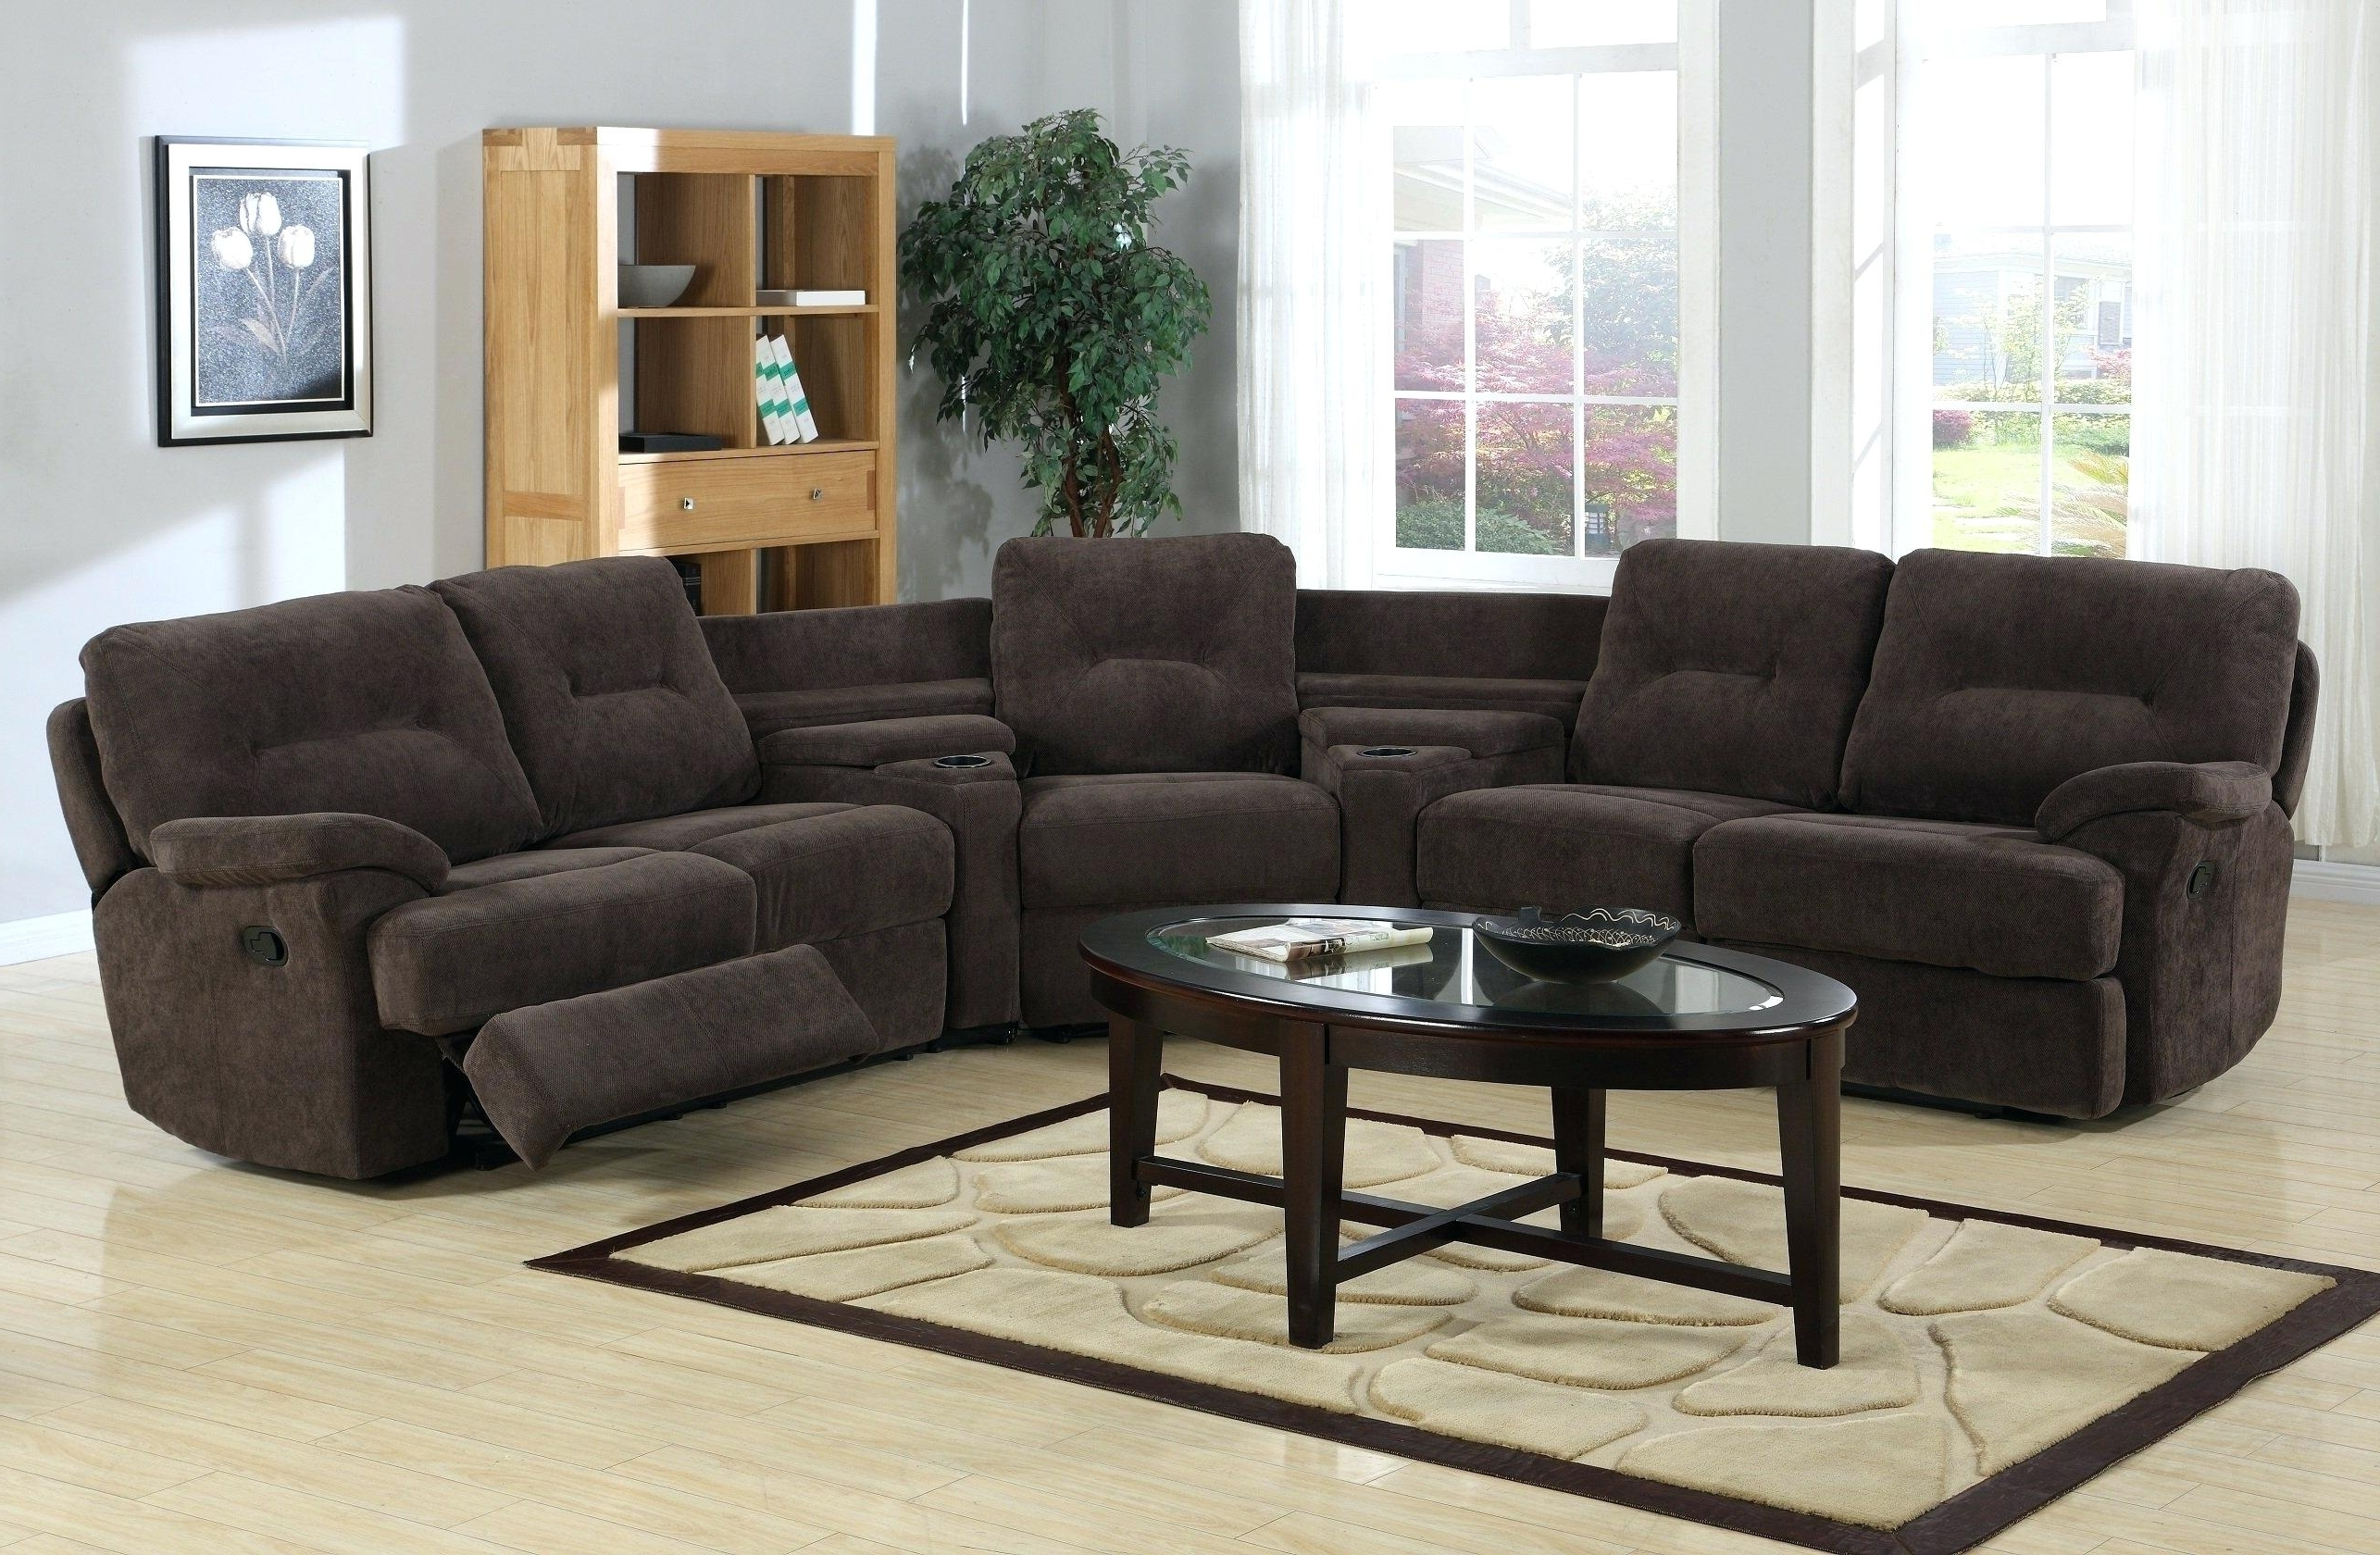 Curved Sectional Couch Round Sofa Slipcover Canada Sofas At Macys Throughout Newest Round Sofas (View 18 of 20)